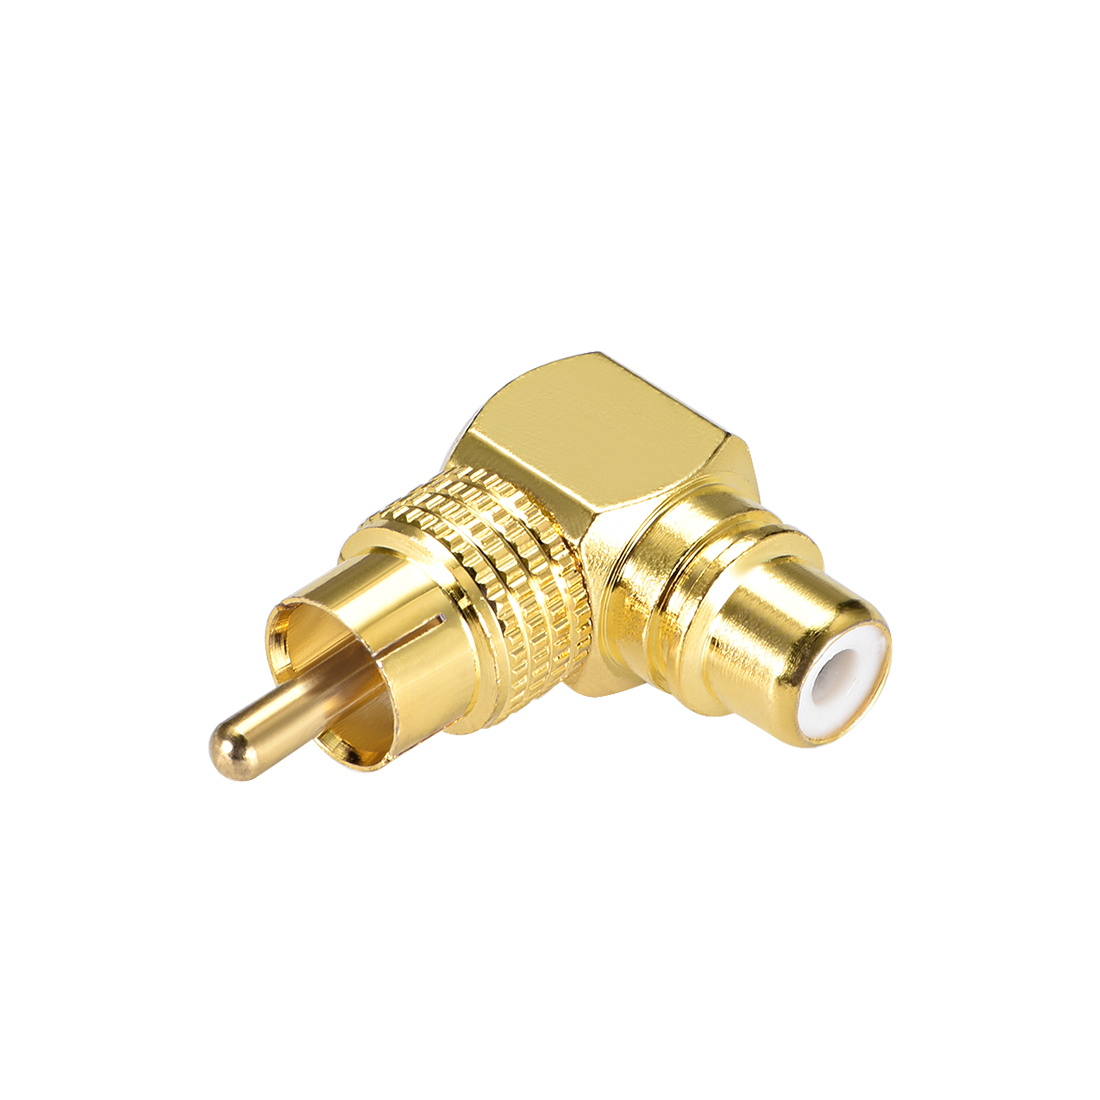 RCA Male to Female 90 Degree Connector Stereo Audio Video Cable Adapter Coupler